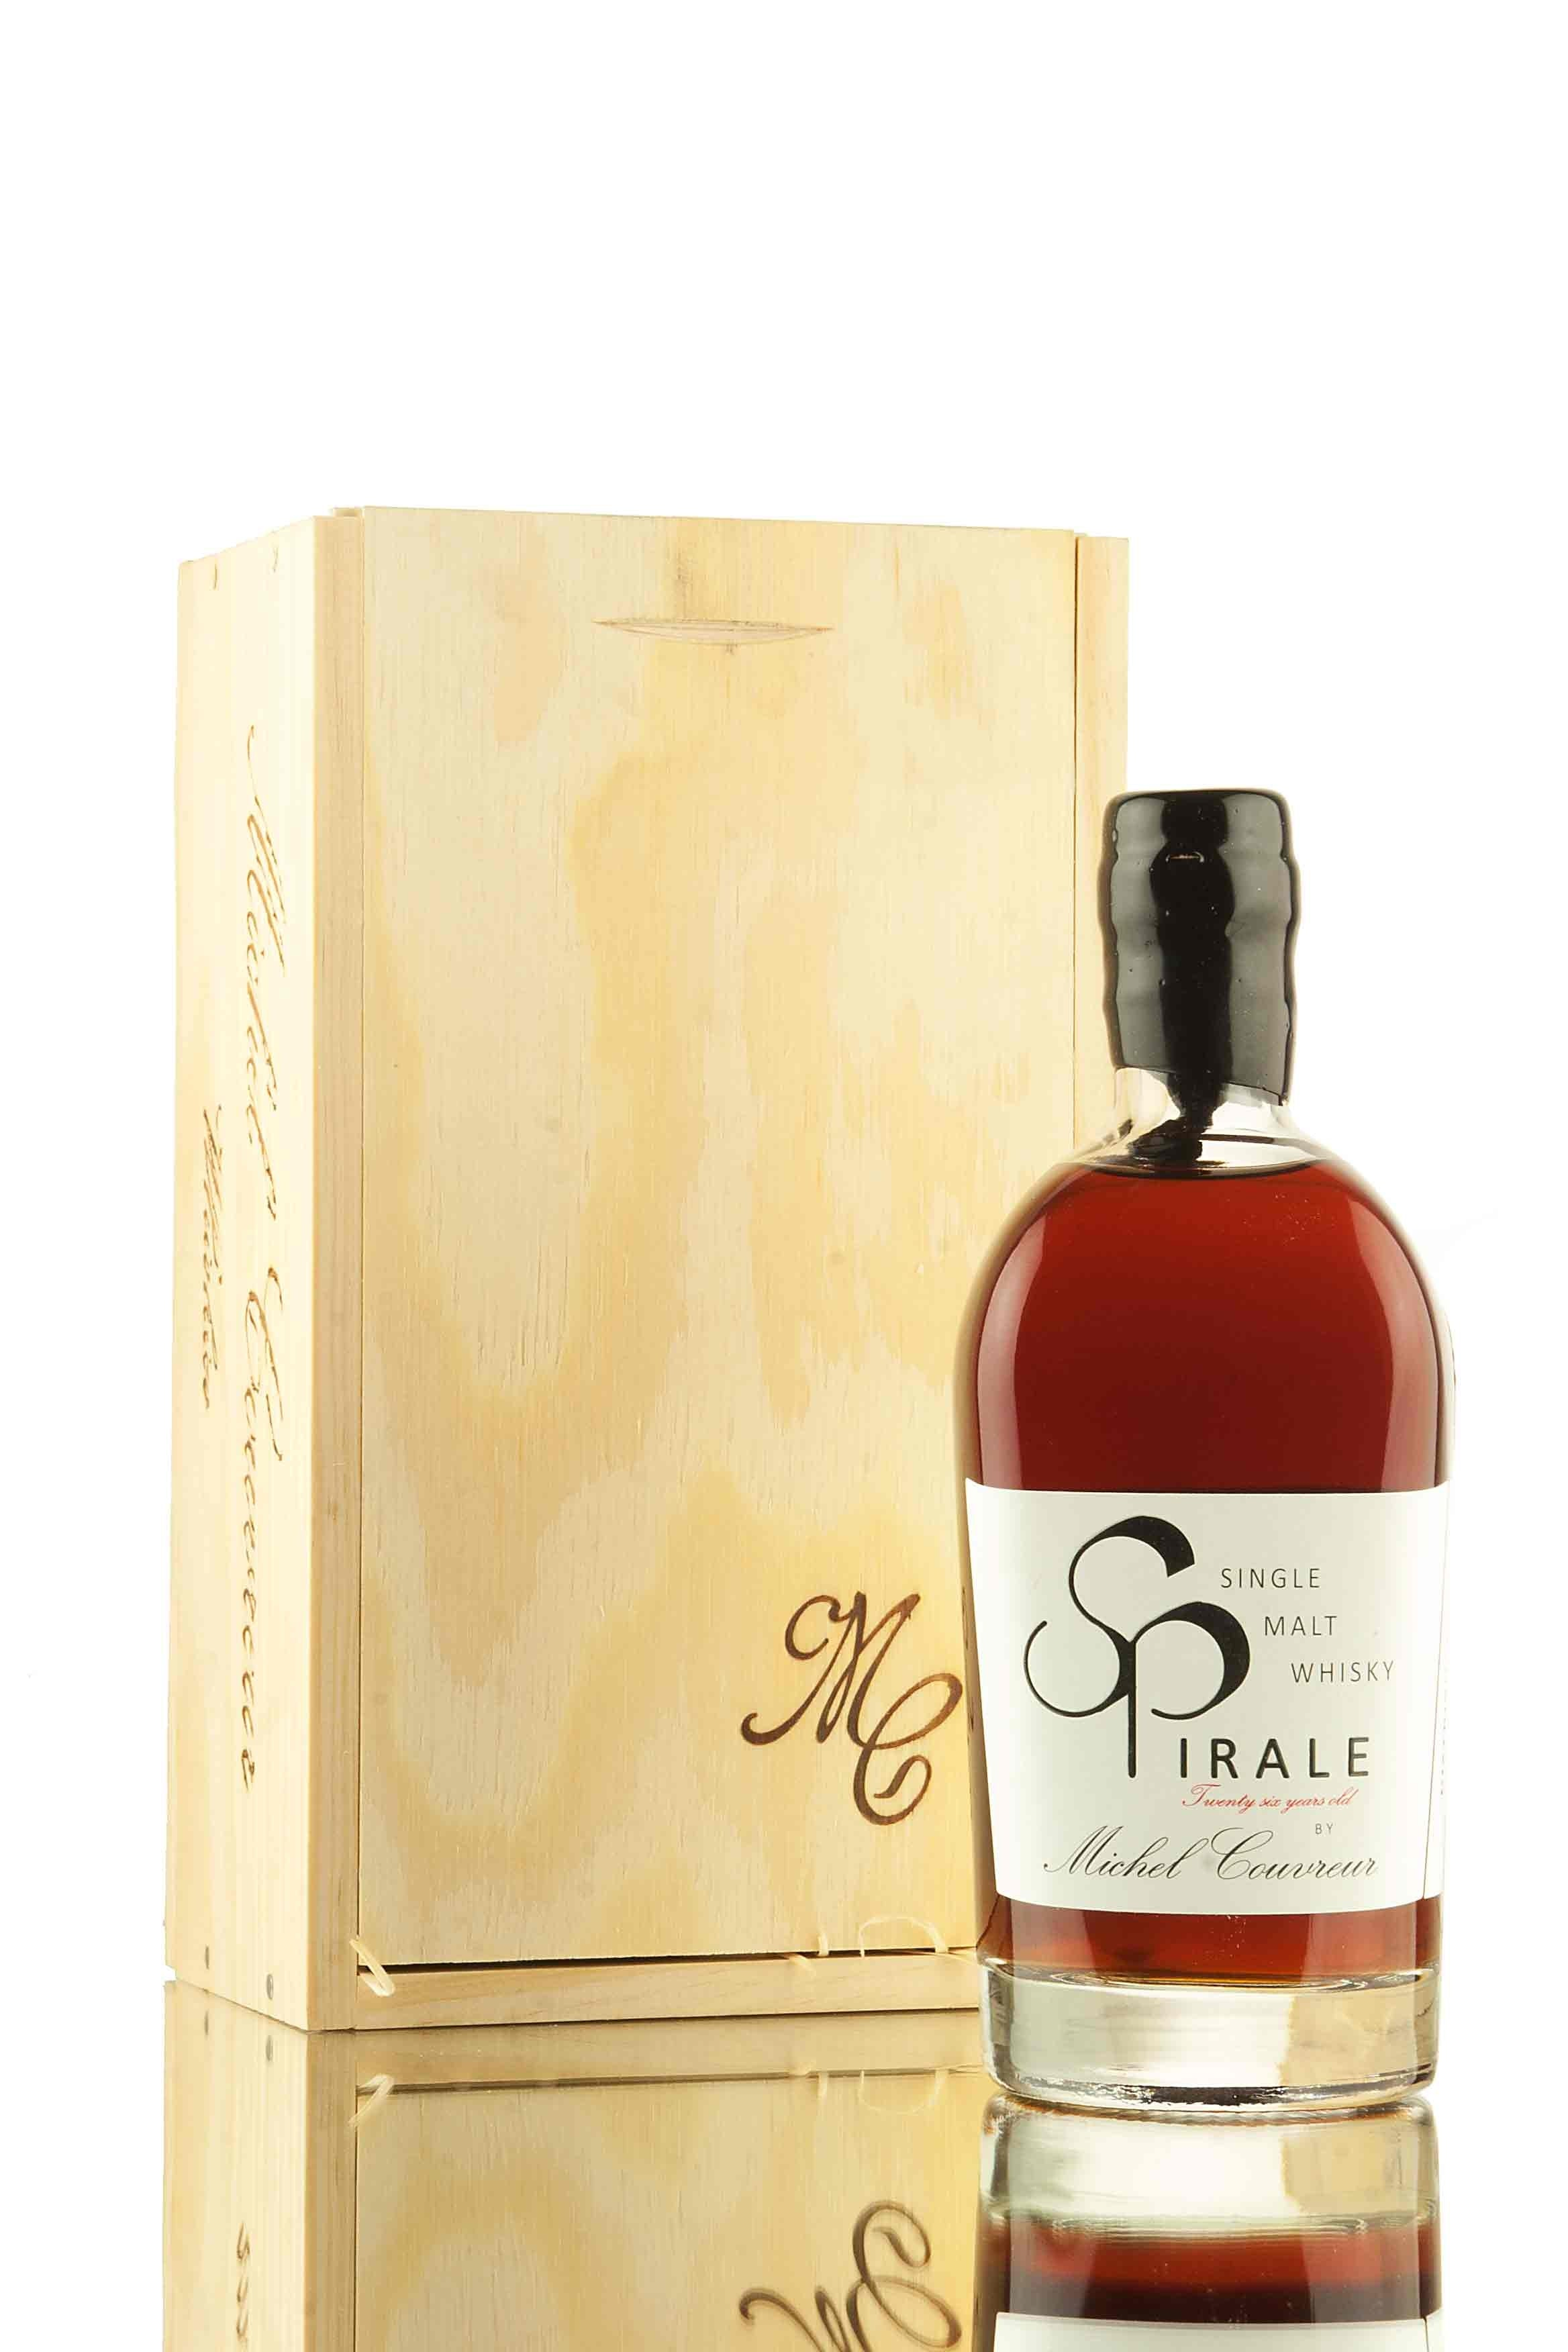 Michel Couvreur Spirale | 26 Year Old Single Cask